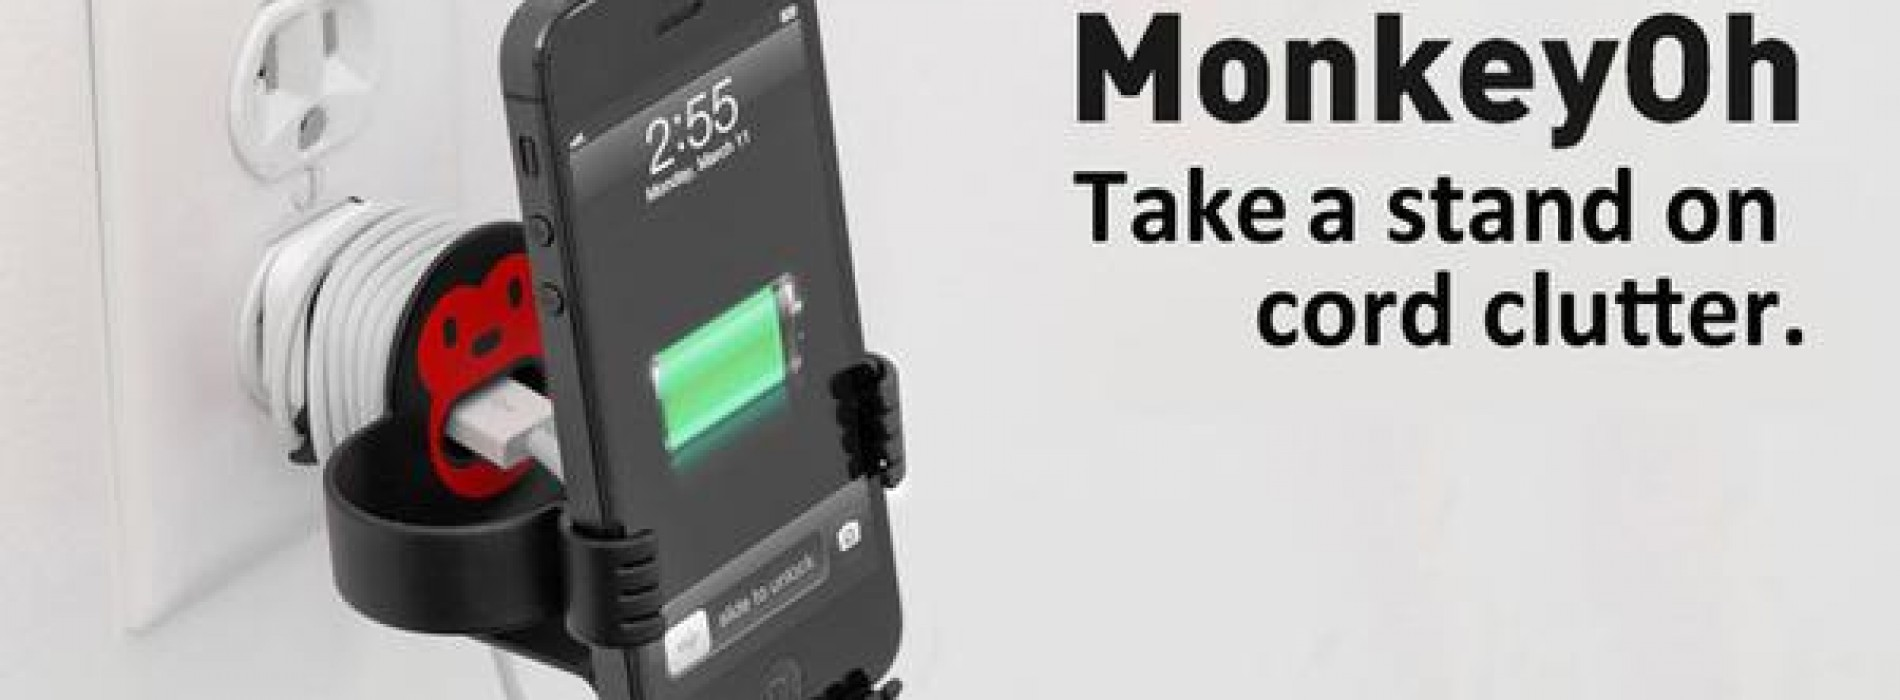 MonkeyOh Smartphone Holder hands-on